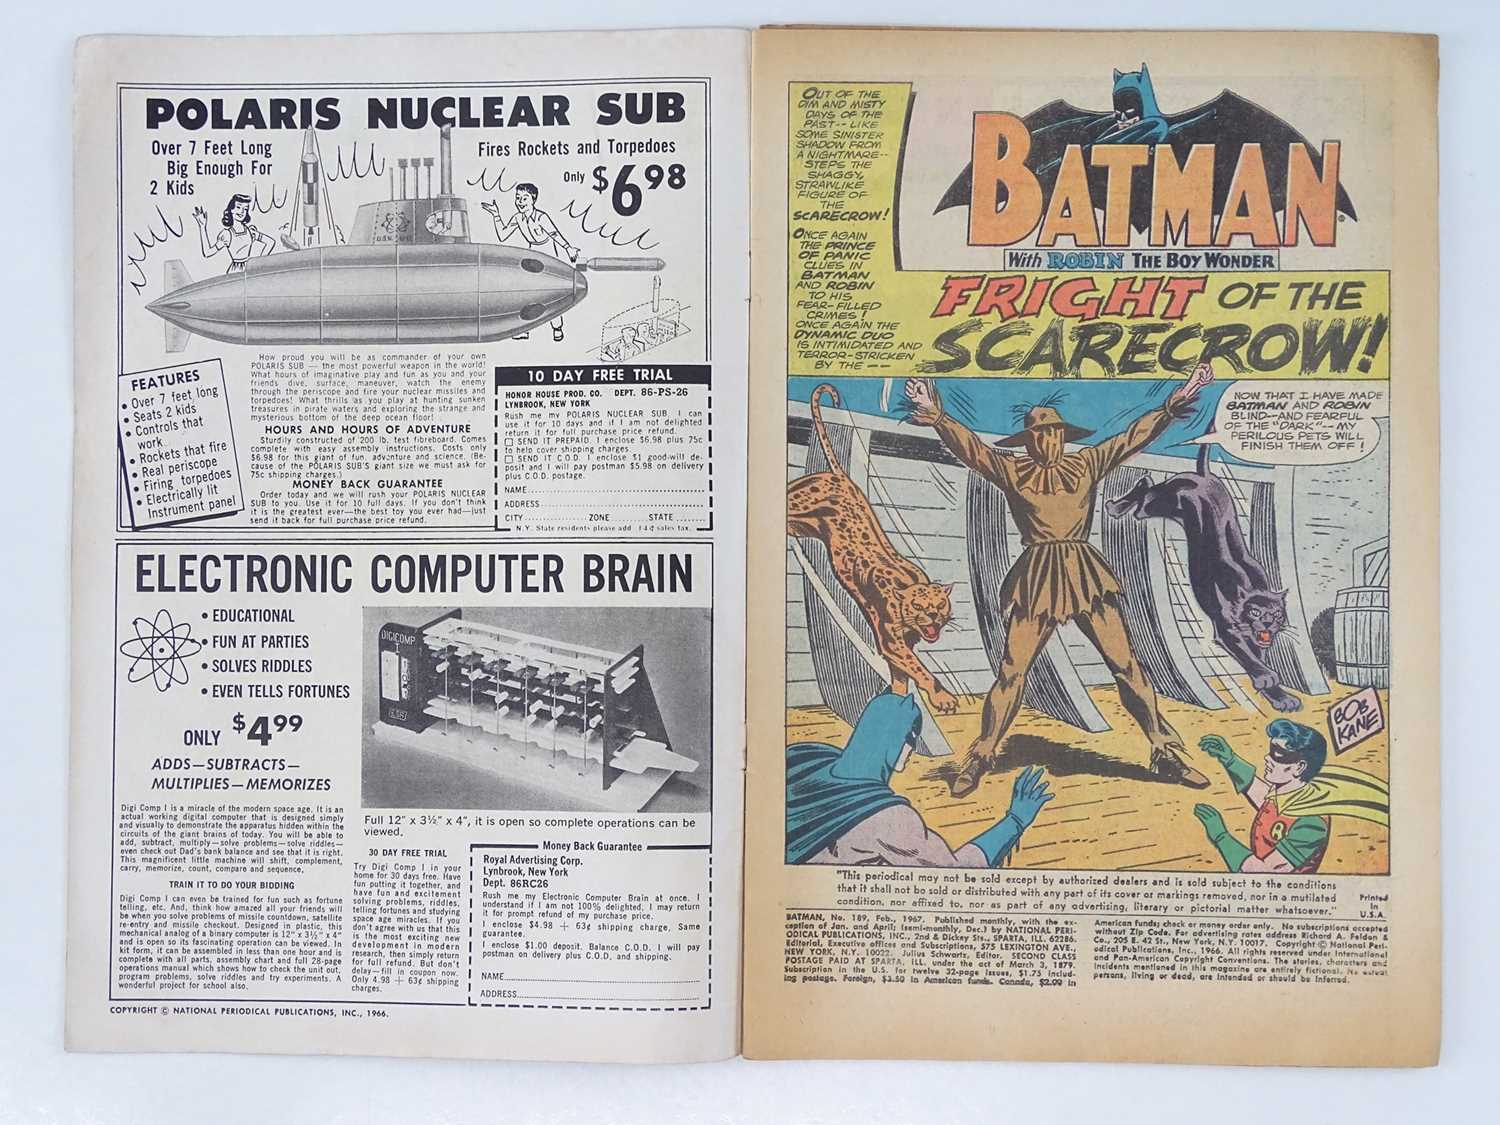 BATMAN #189 - (1967 - DC - UK Cover Price) - KEY Book - First Silver Age appearance of the Scarecrow - Image 3 of 10